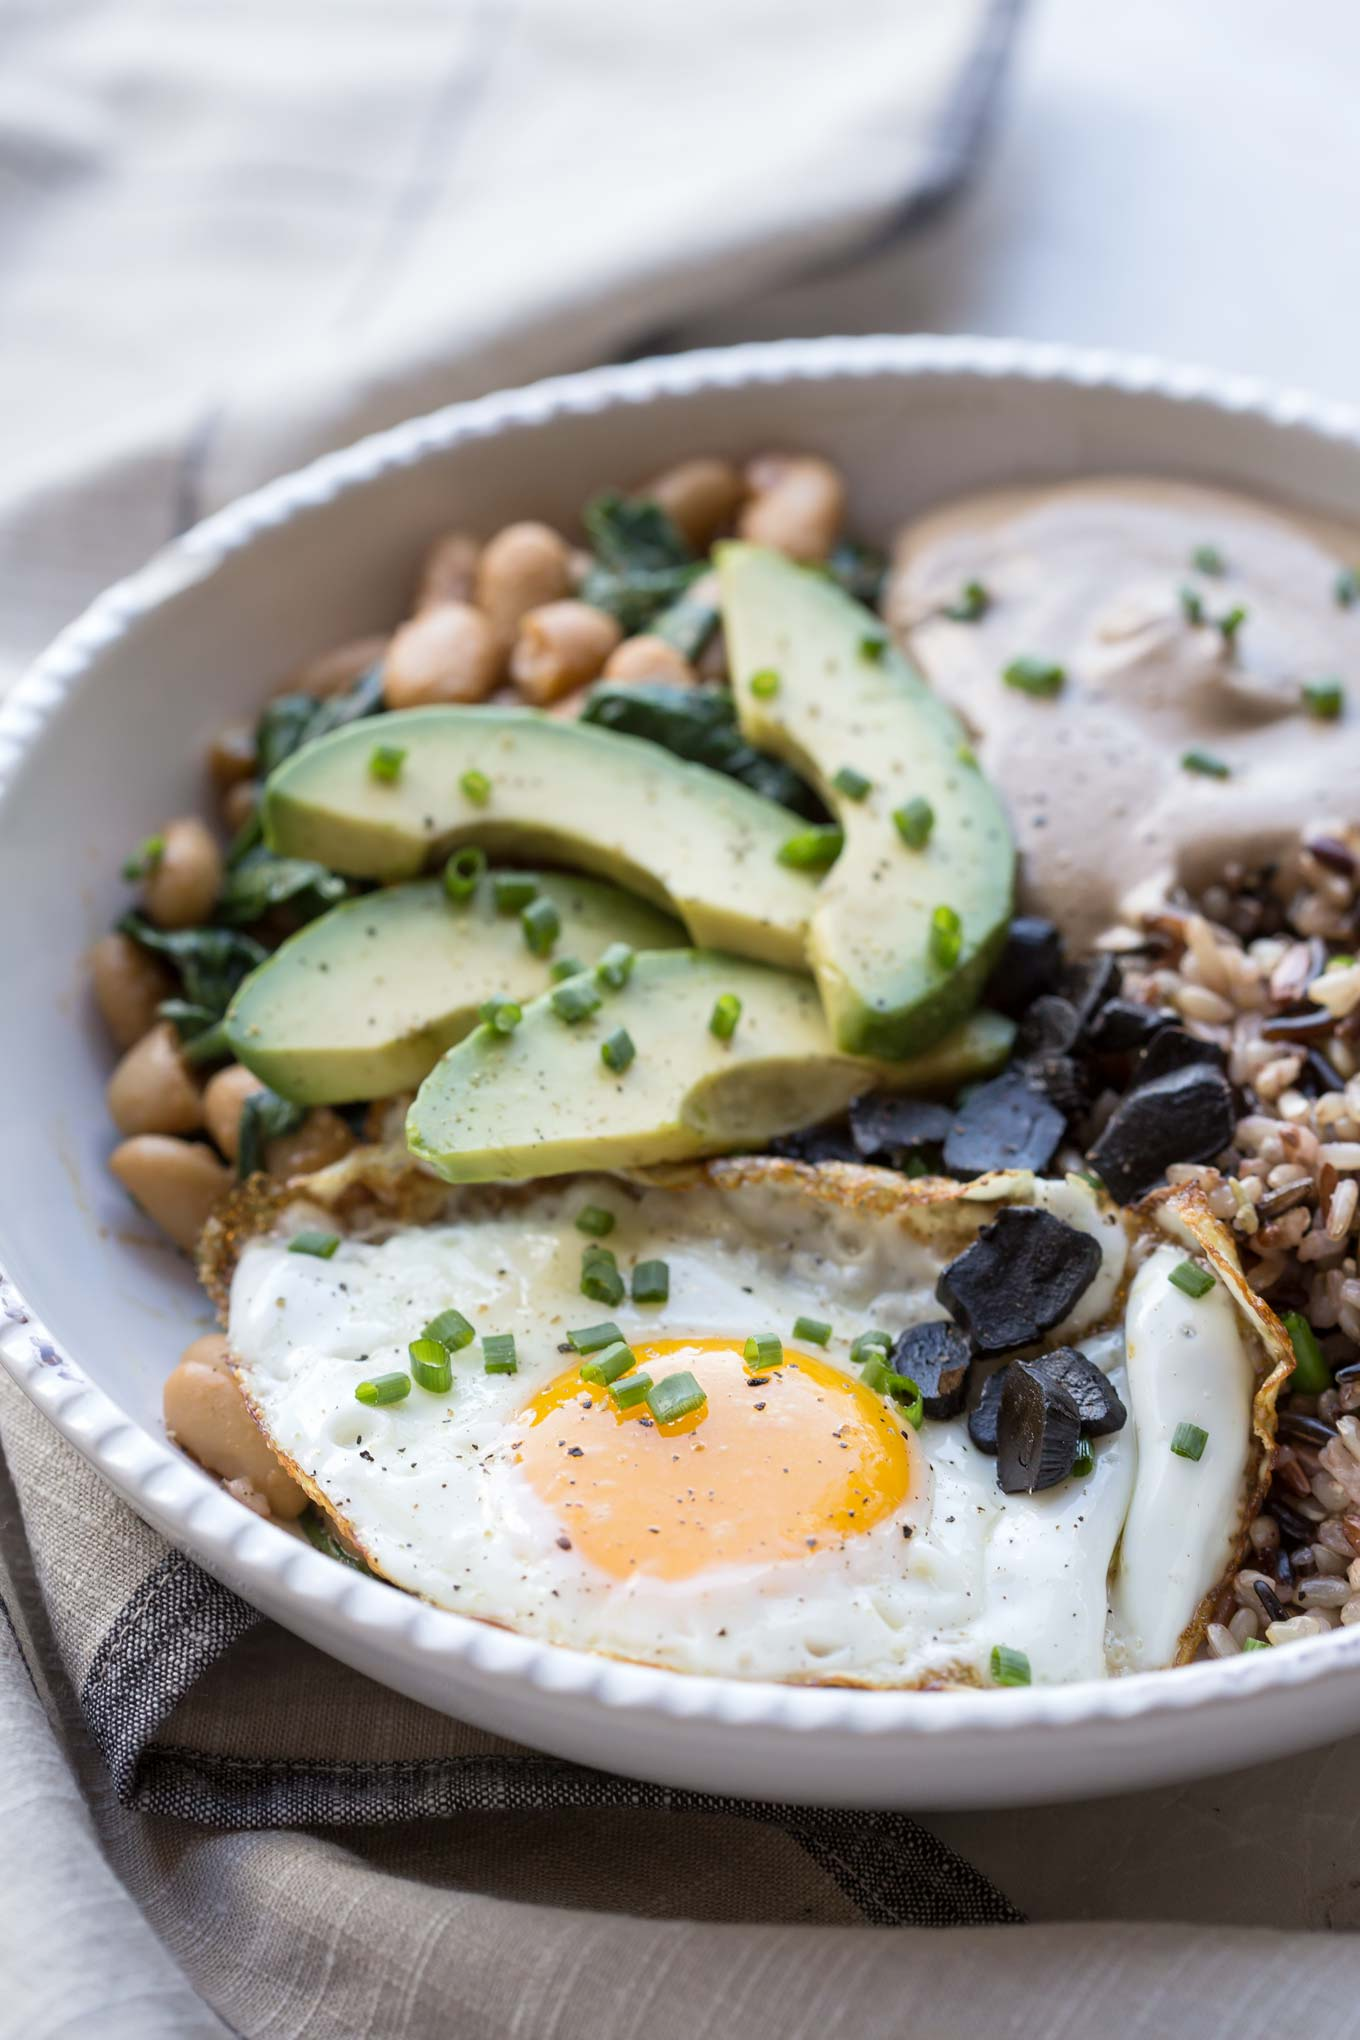 Protein Bowl with Cashew Black Garlic Sauce, Fried Egg, Beans and Avocado in a Creamy Bowl - 45 degree view